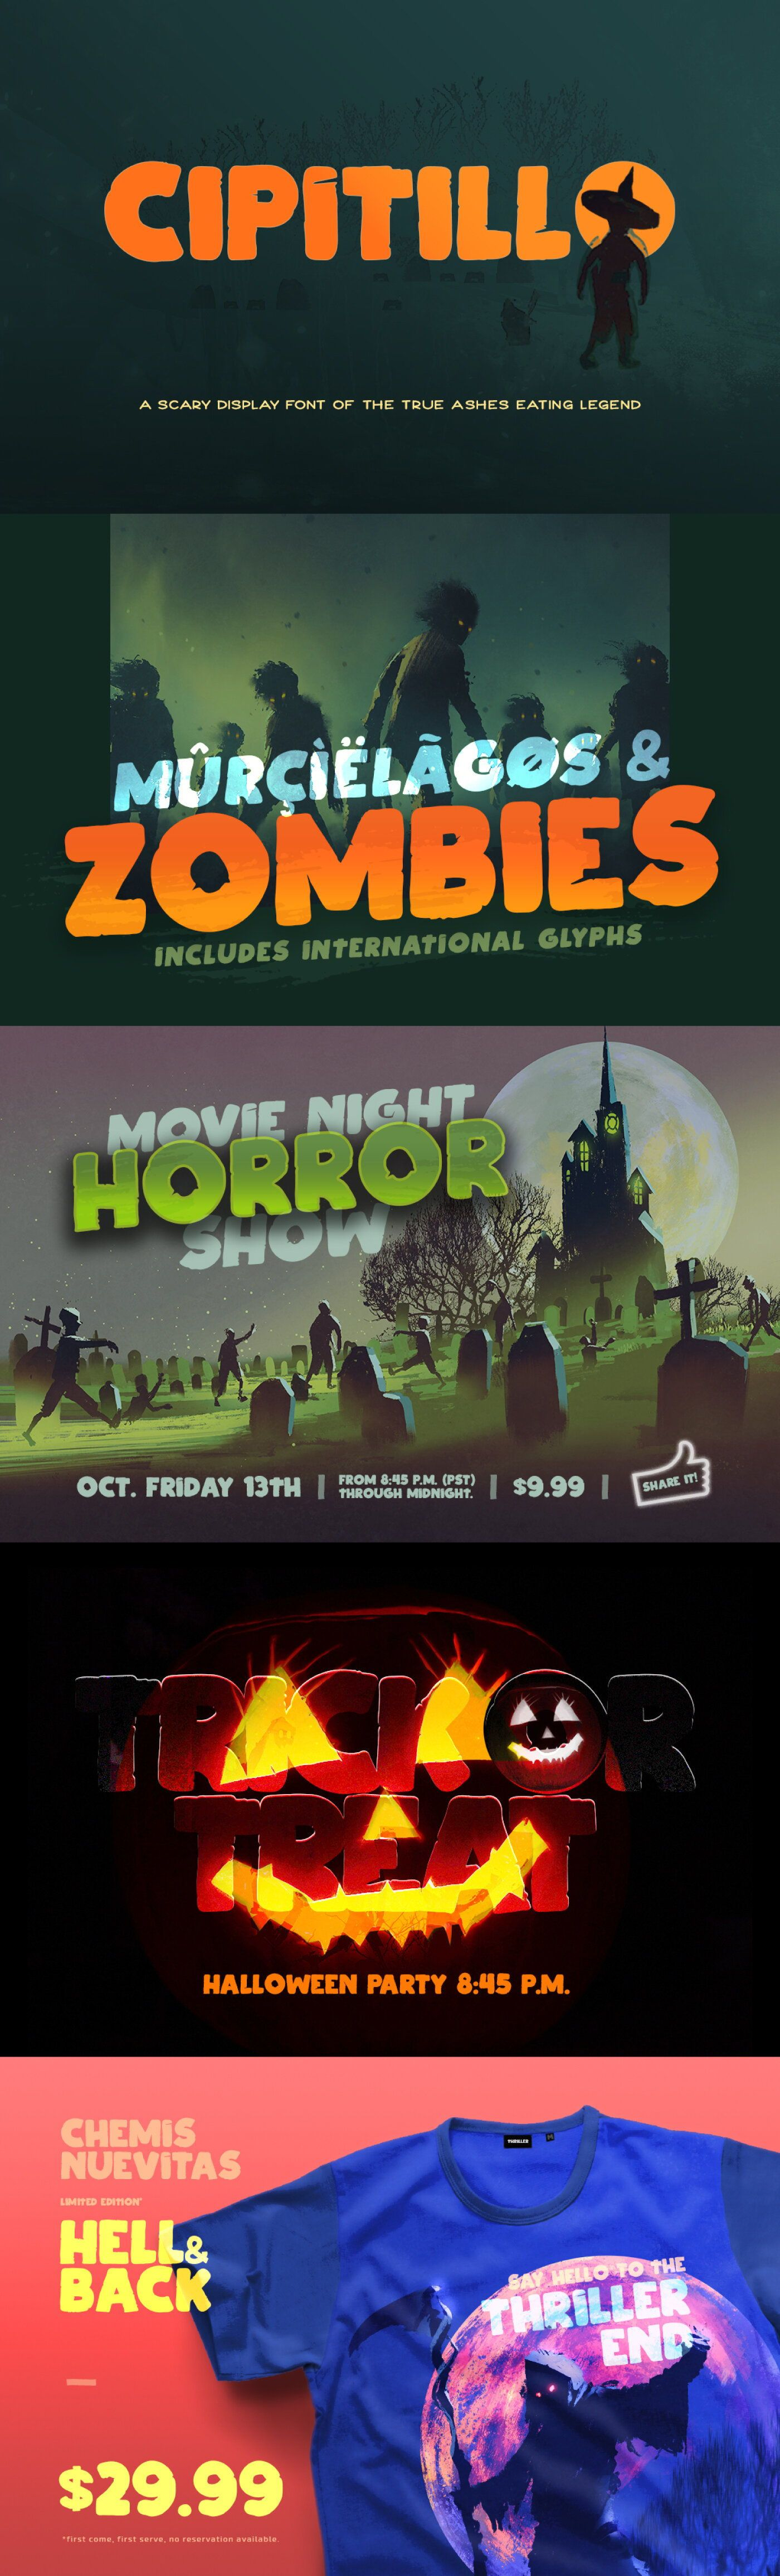 Halloween 2020 Poster No Font CIPITILLO   FREE DISPLAY FONT — Pixel Surplus | Resources For